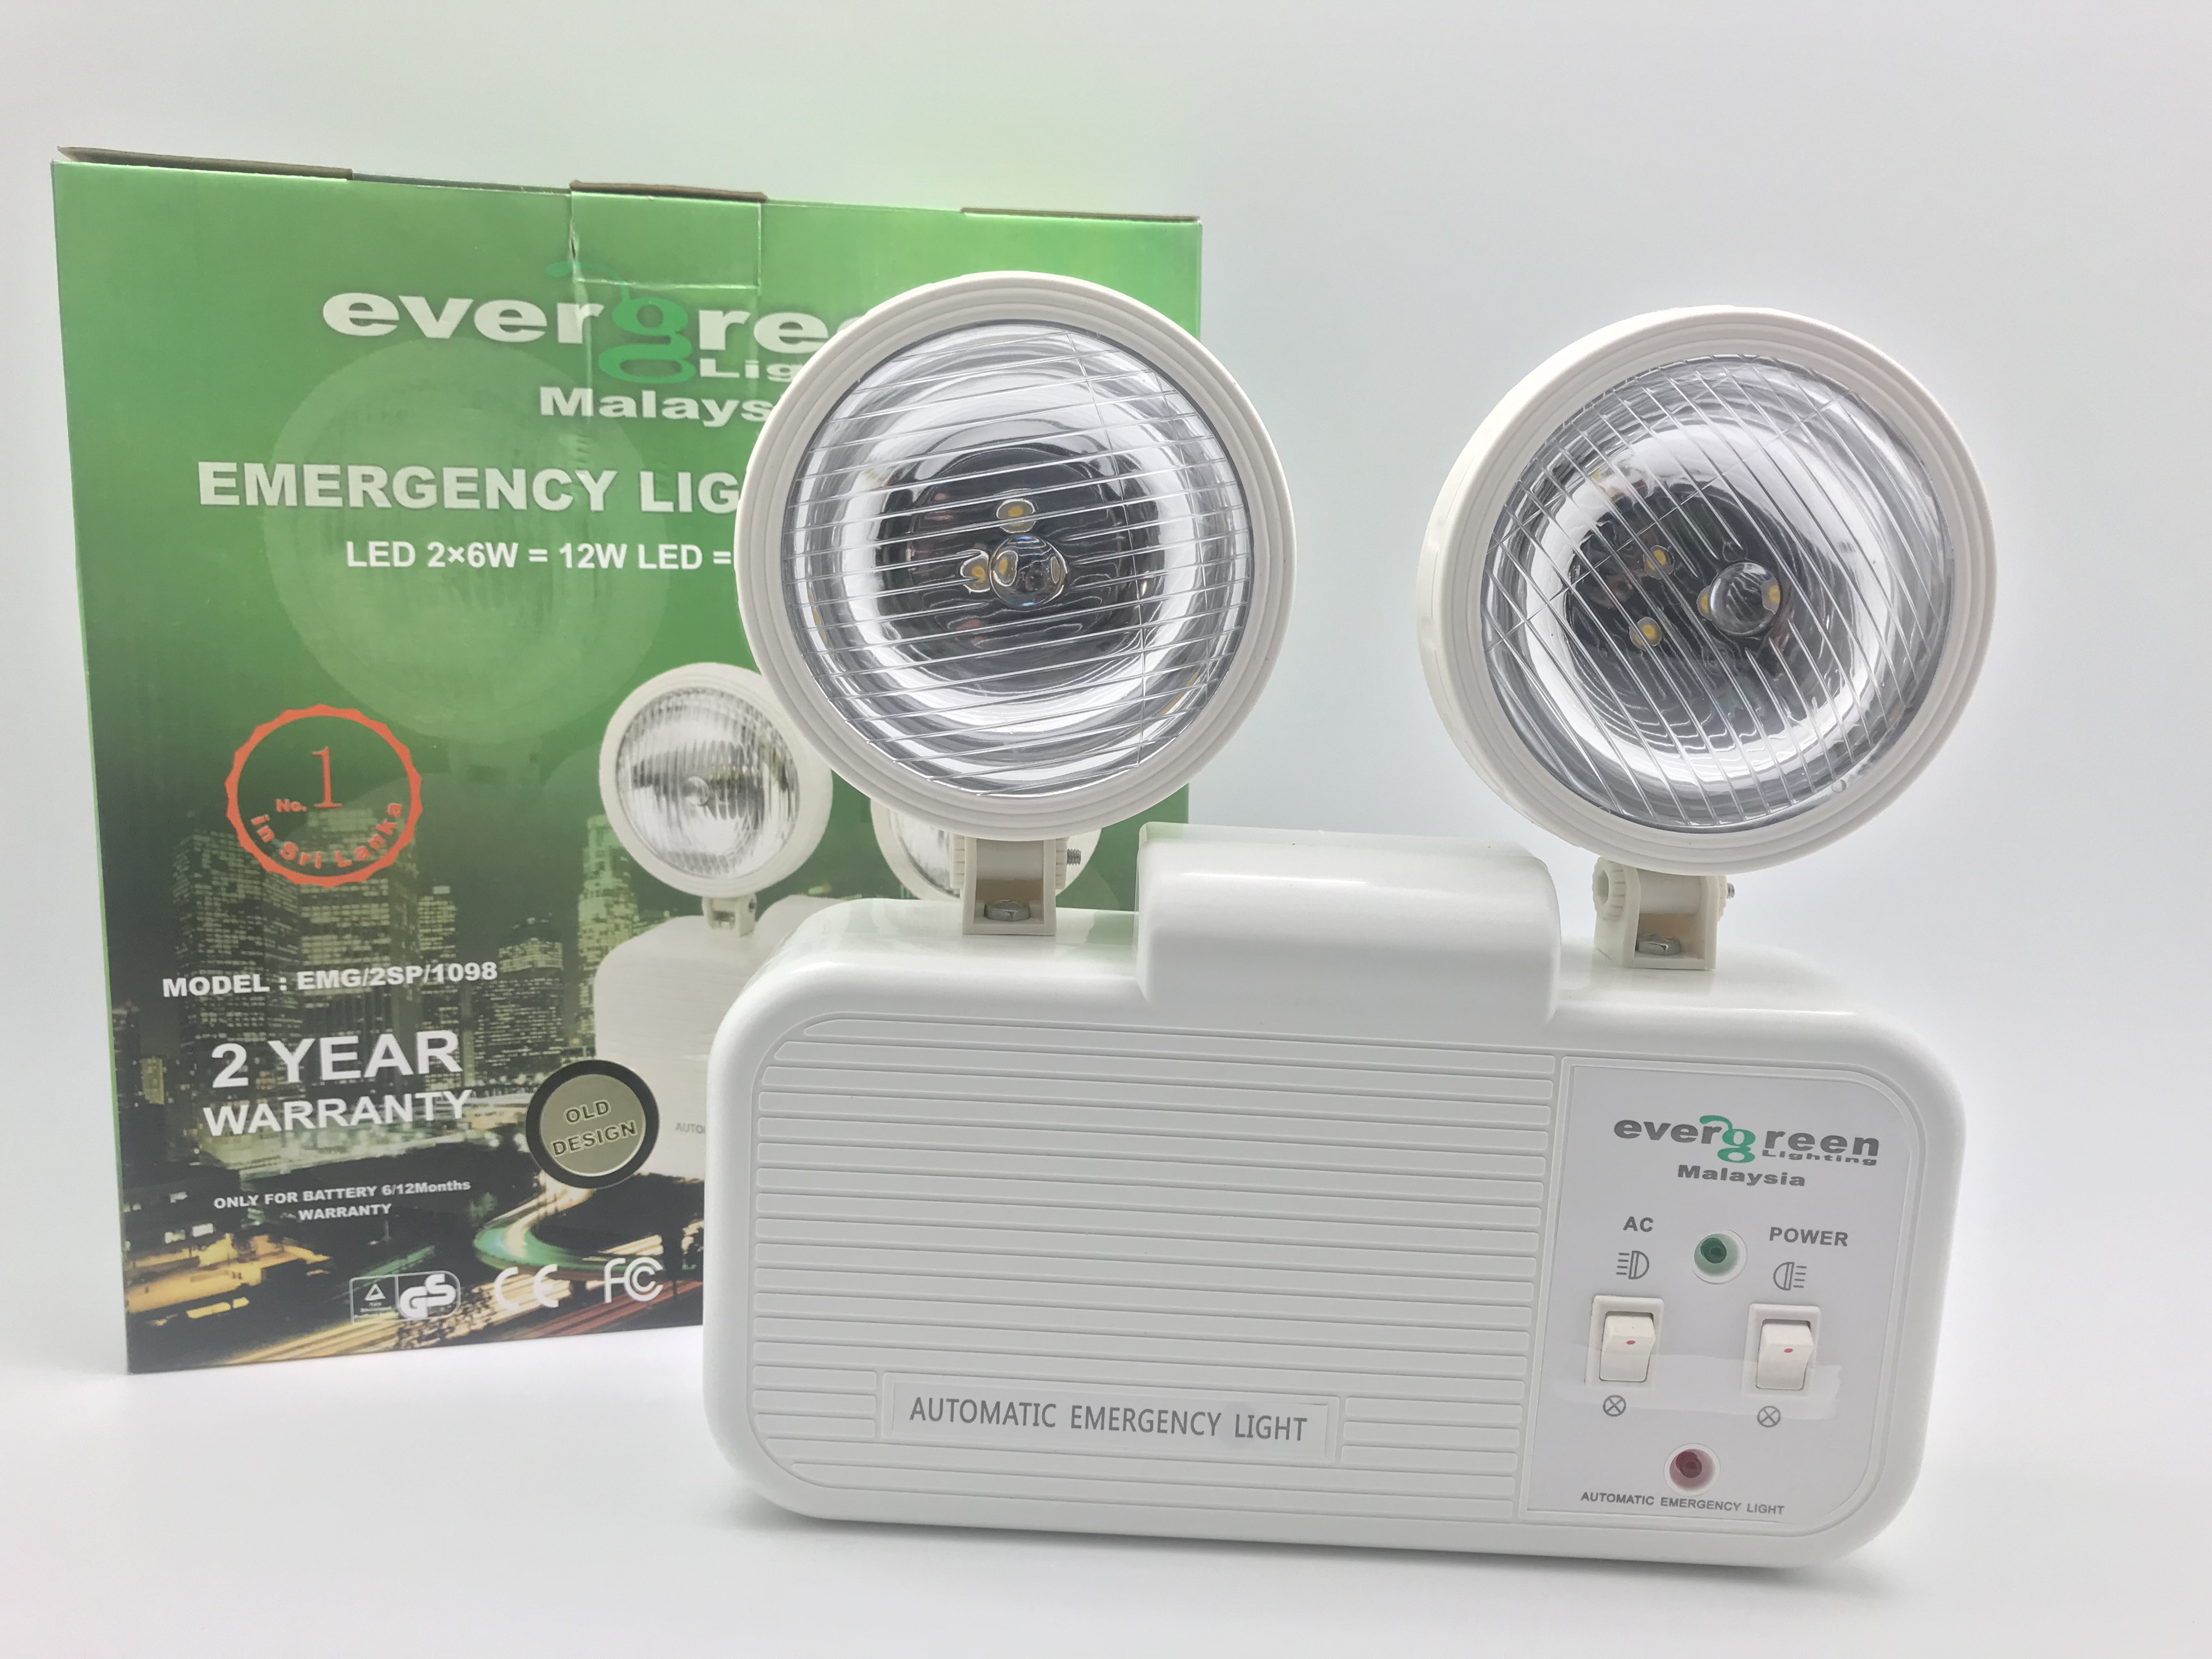 Emergency Lights Archives Evergreen Lighting Malaysia Archive Automatic Led Light Two Spot 2x6w Ww Iron Body Old Design